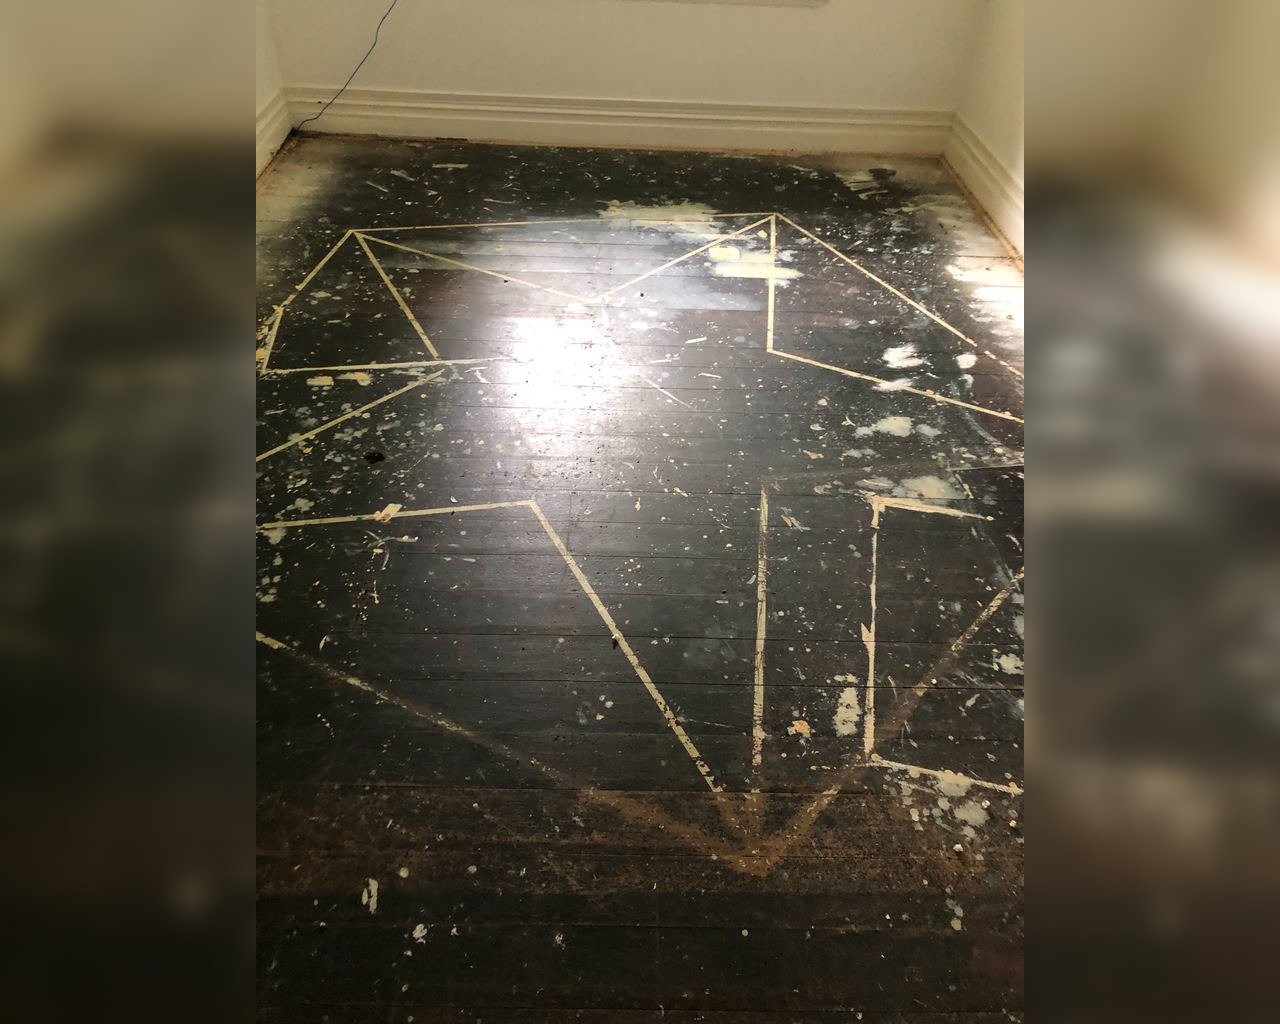 Pentagram, ritual circle discovered by couple for first time while recarpeting their home